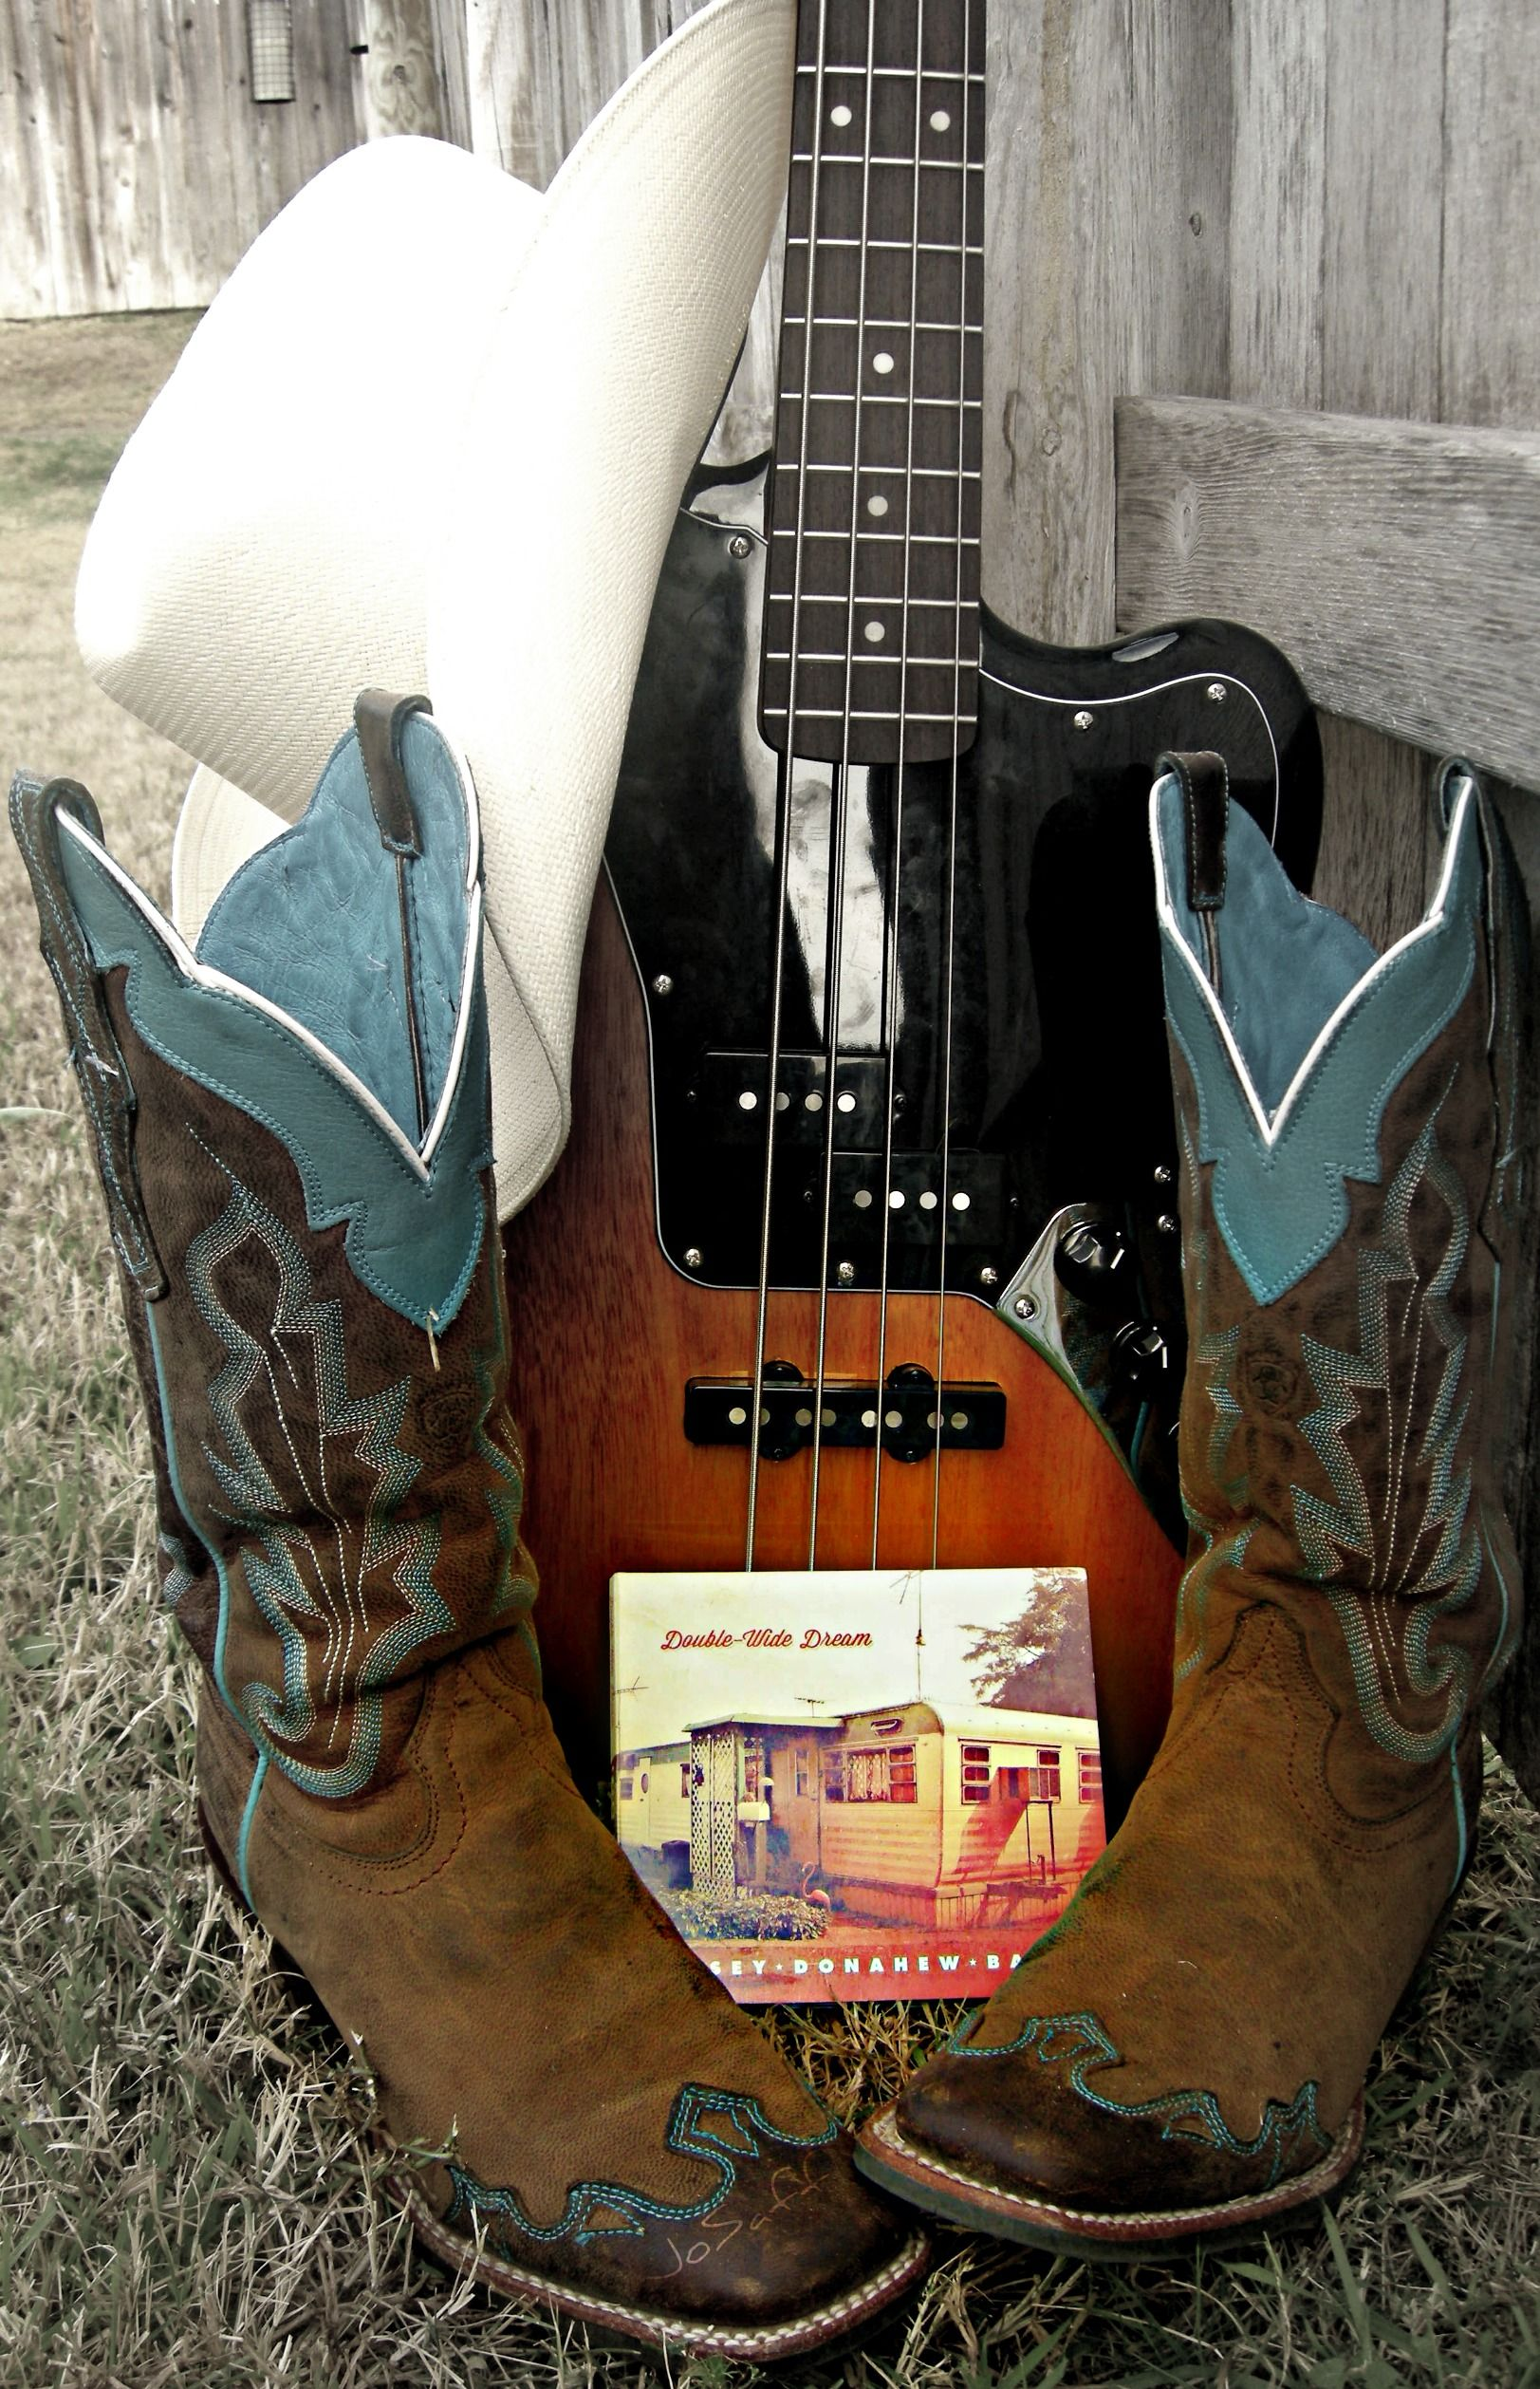 Boots cowboy and hat and guitar photo